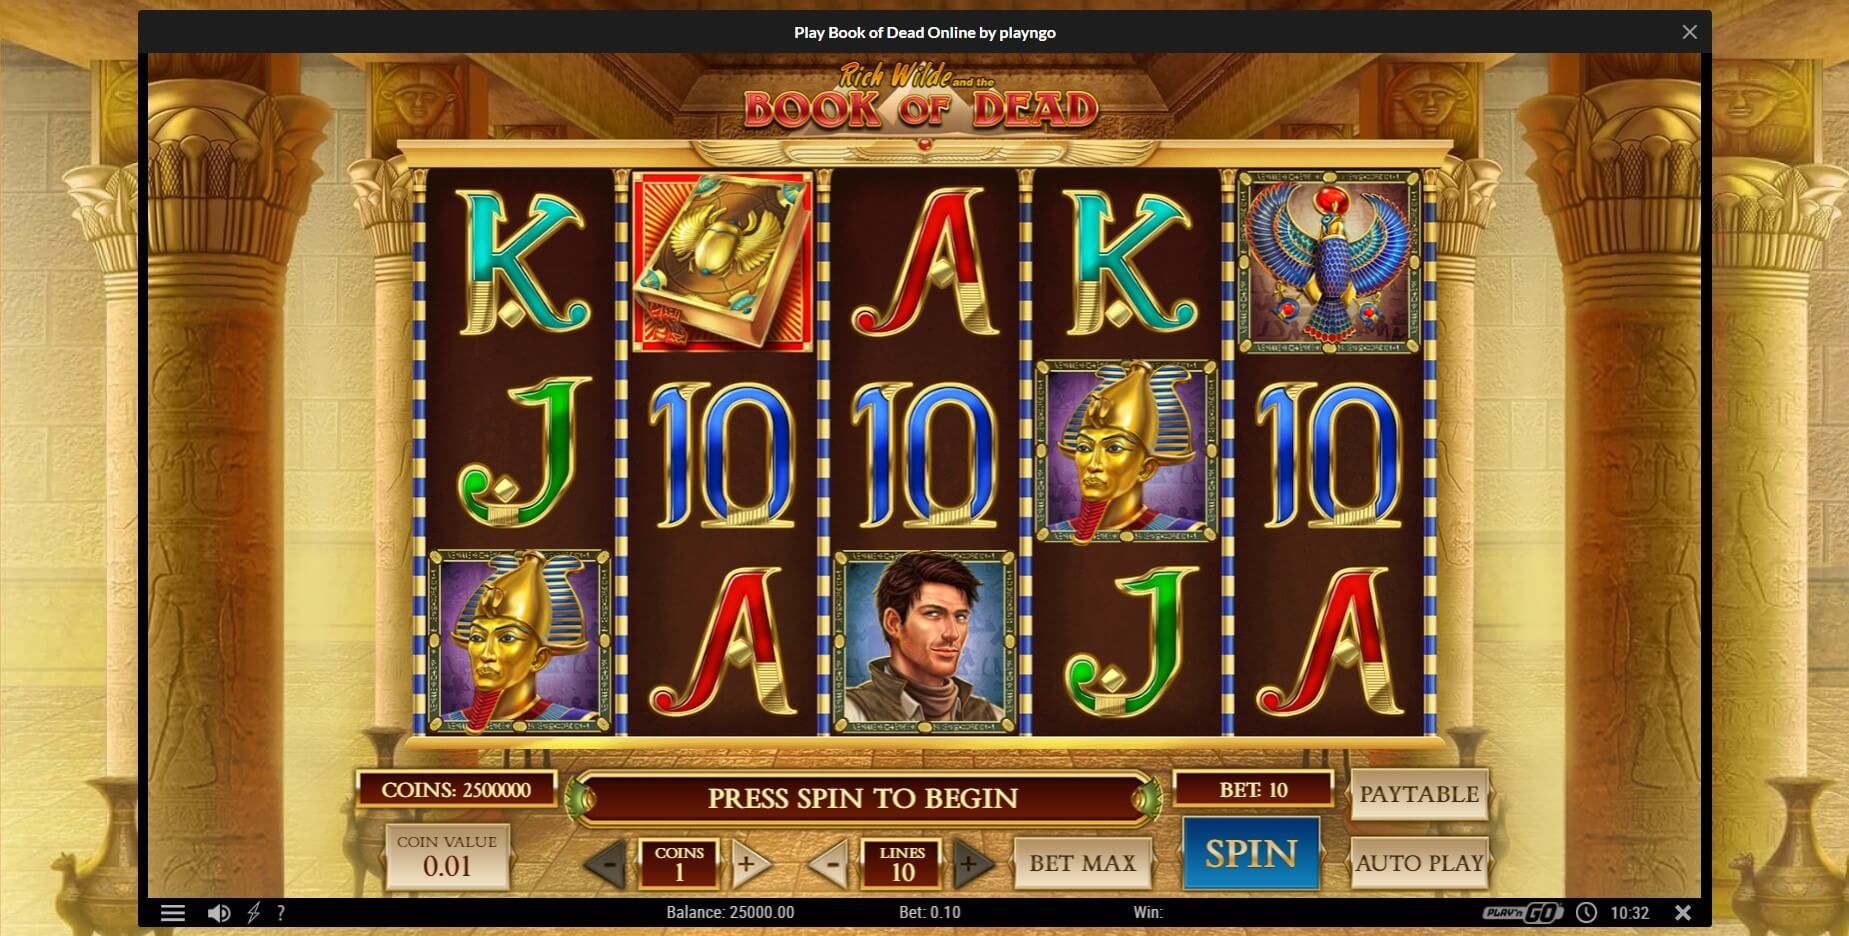 Game Play at Premier Casino